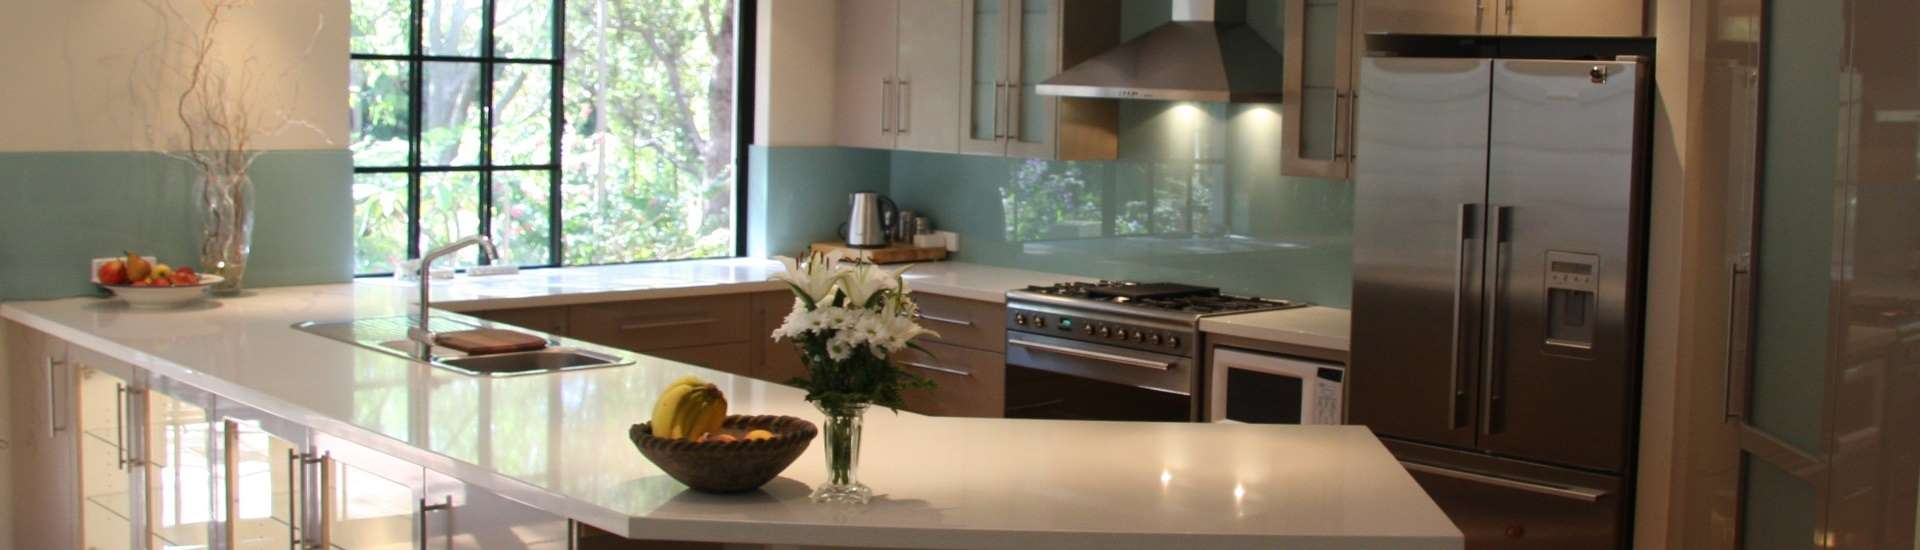 Kitchen Solutions - Bathroom & Kitchen Renovations Perth WA